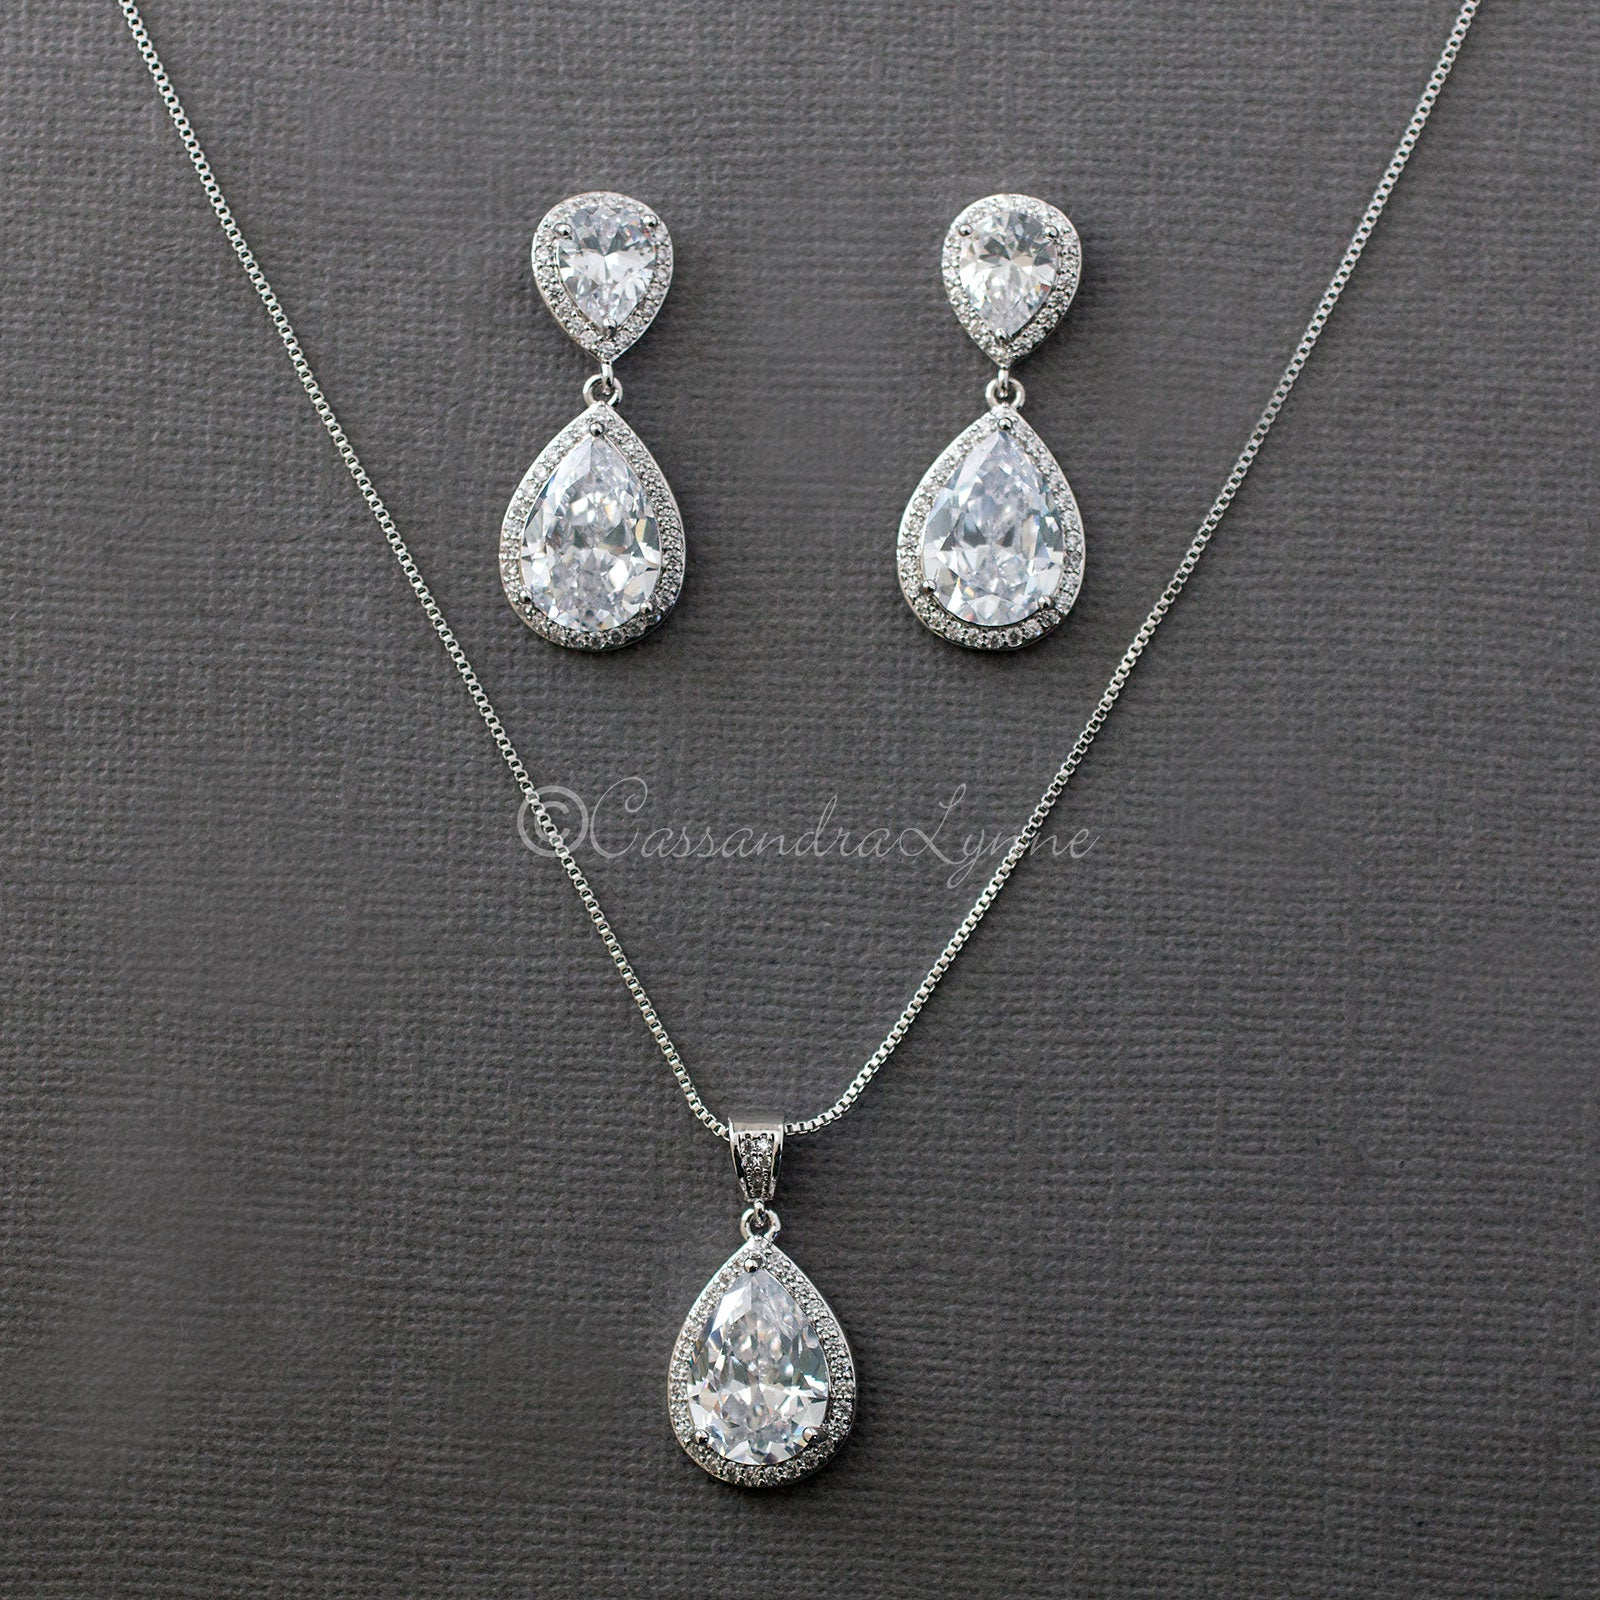 Bridal Pendant Set of Large Water Drops